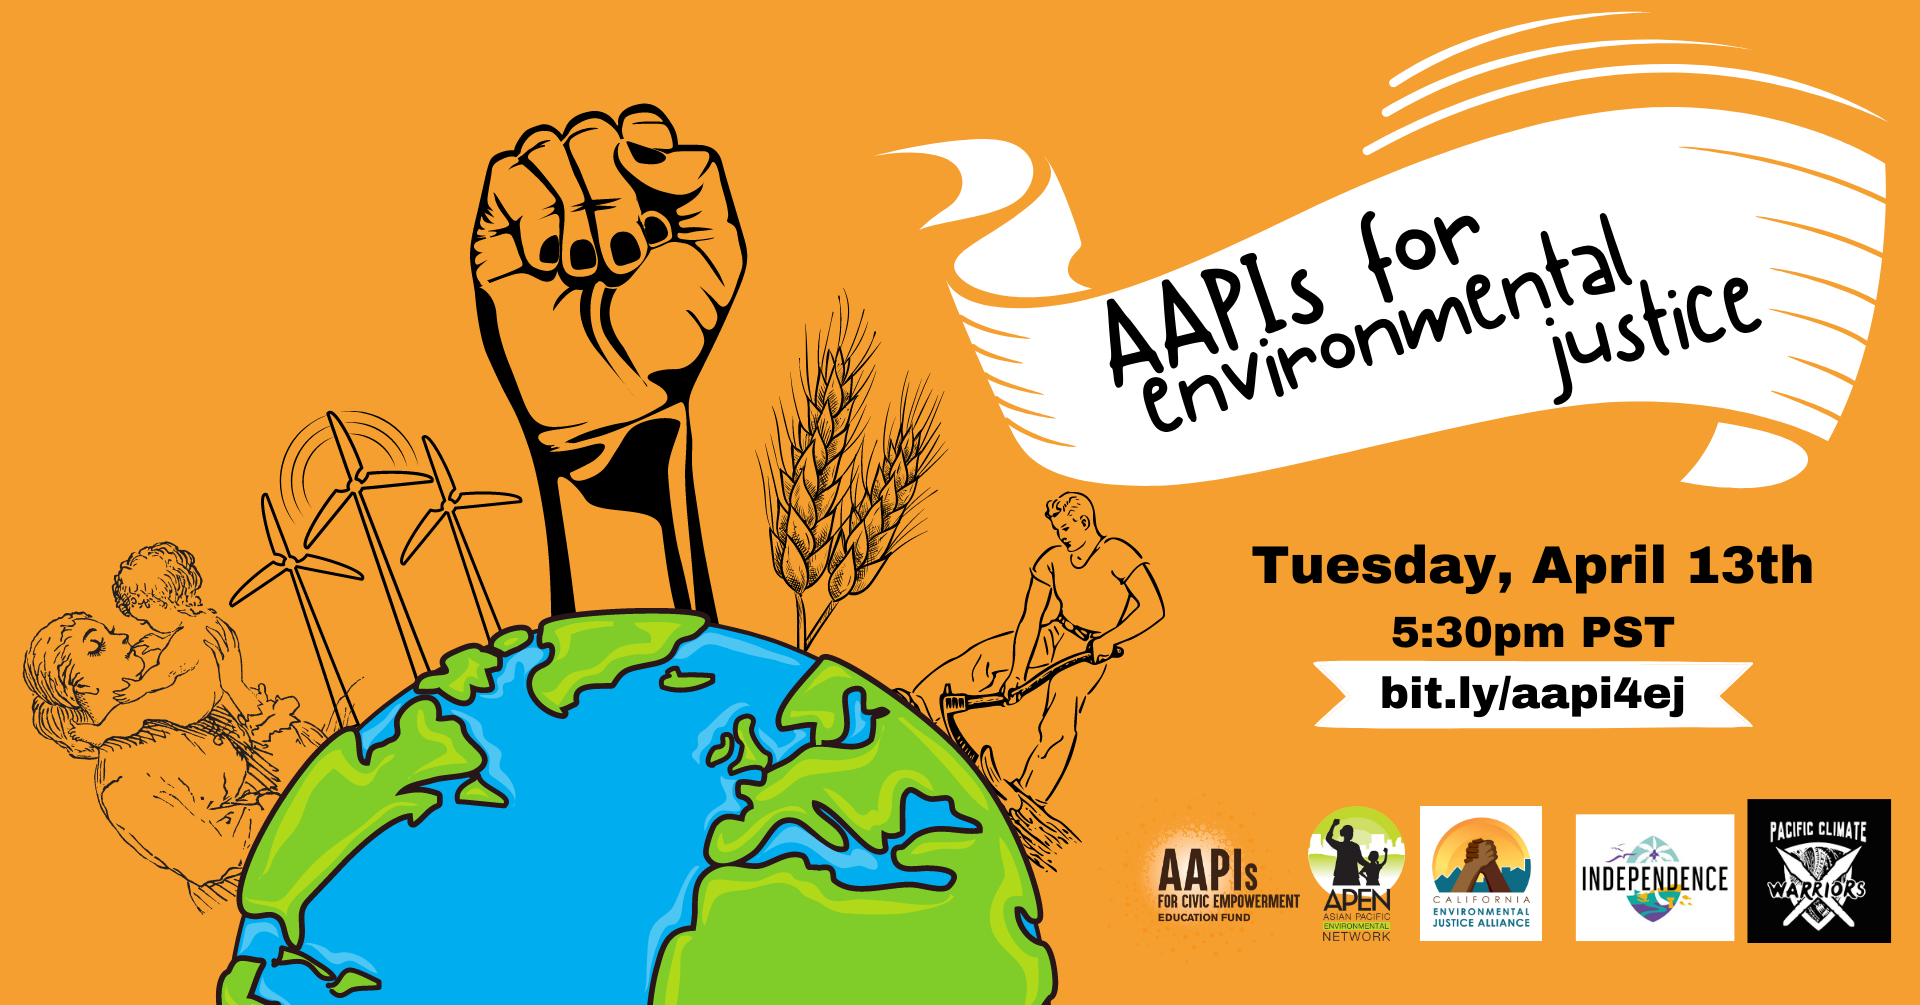 AAPIs for environmental justice